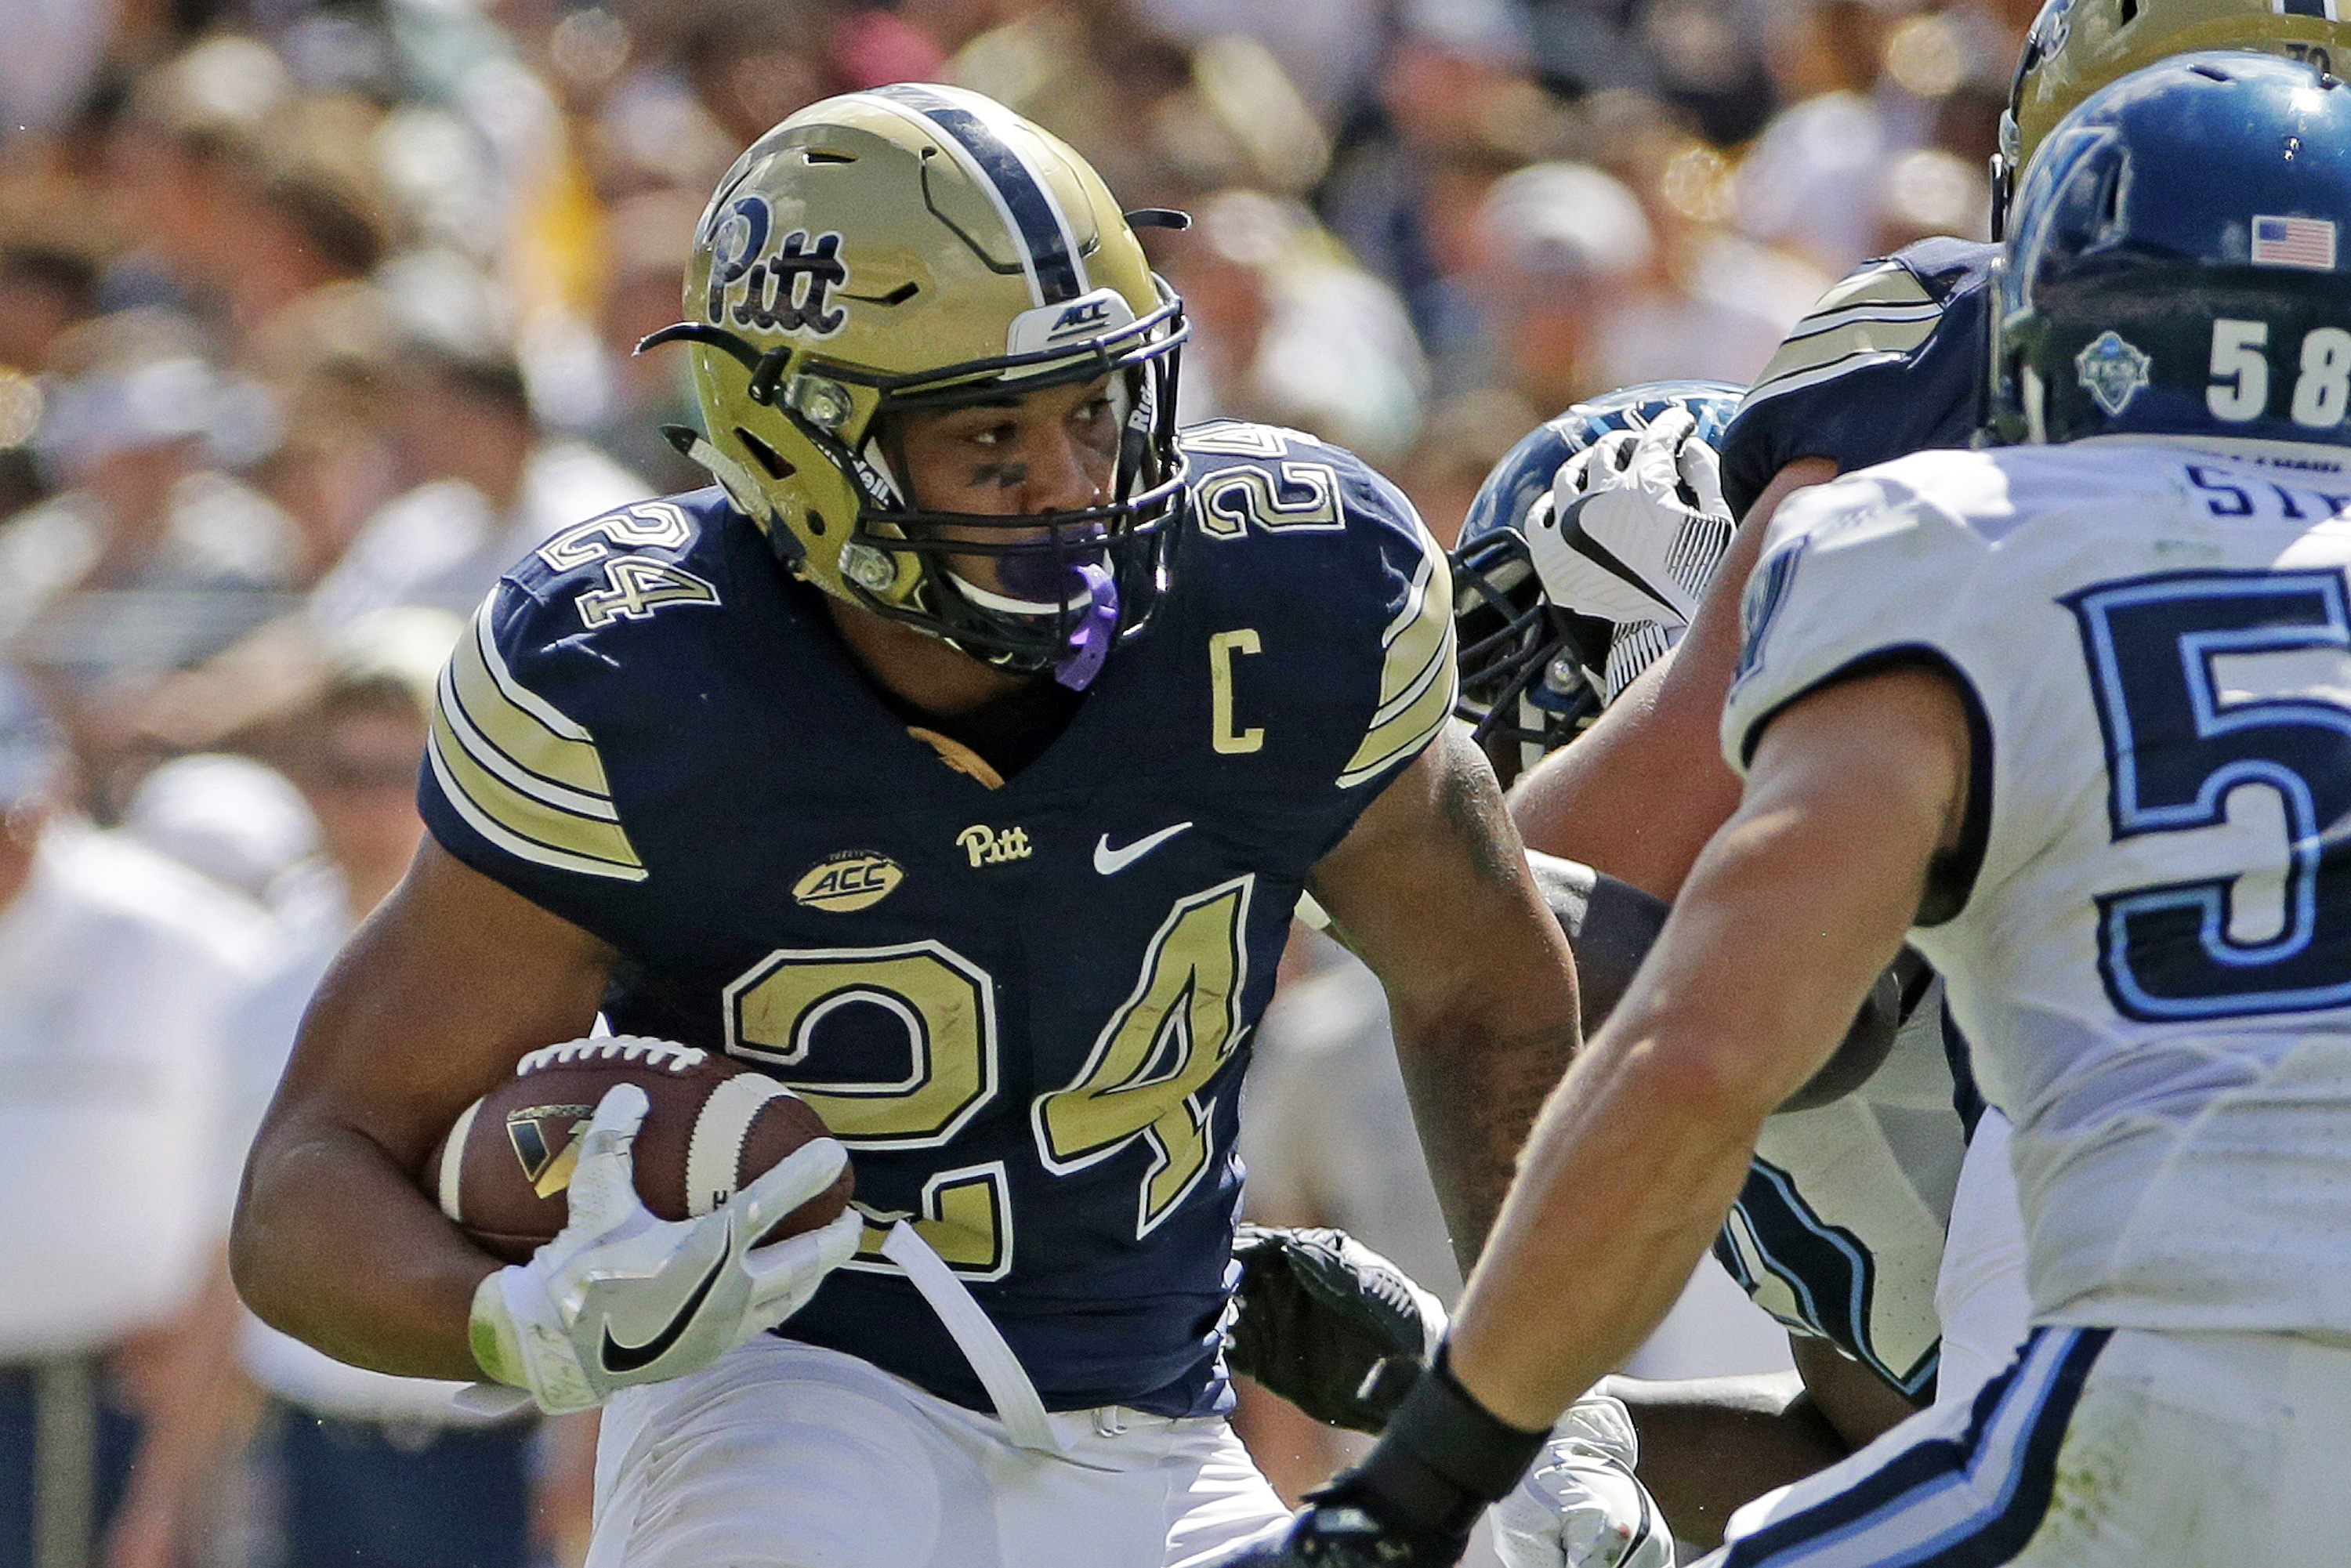 File-This Sept. 3, 2016, file photo shows Pittsburgh running back James Conner (24) making a cut in front of Villanova linebacker Jeff Streib (58) during the first half of an NCAA college football game in Pittsburgh.   Conner has run for two straight 100-